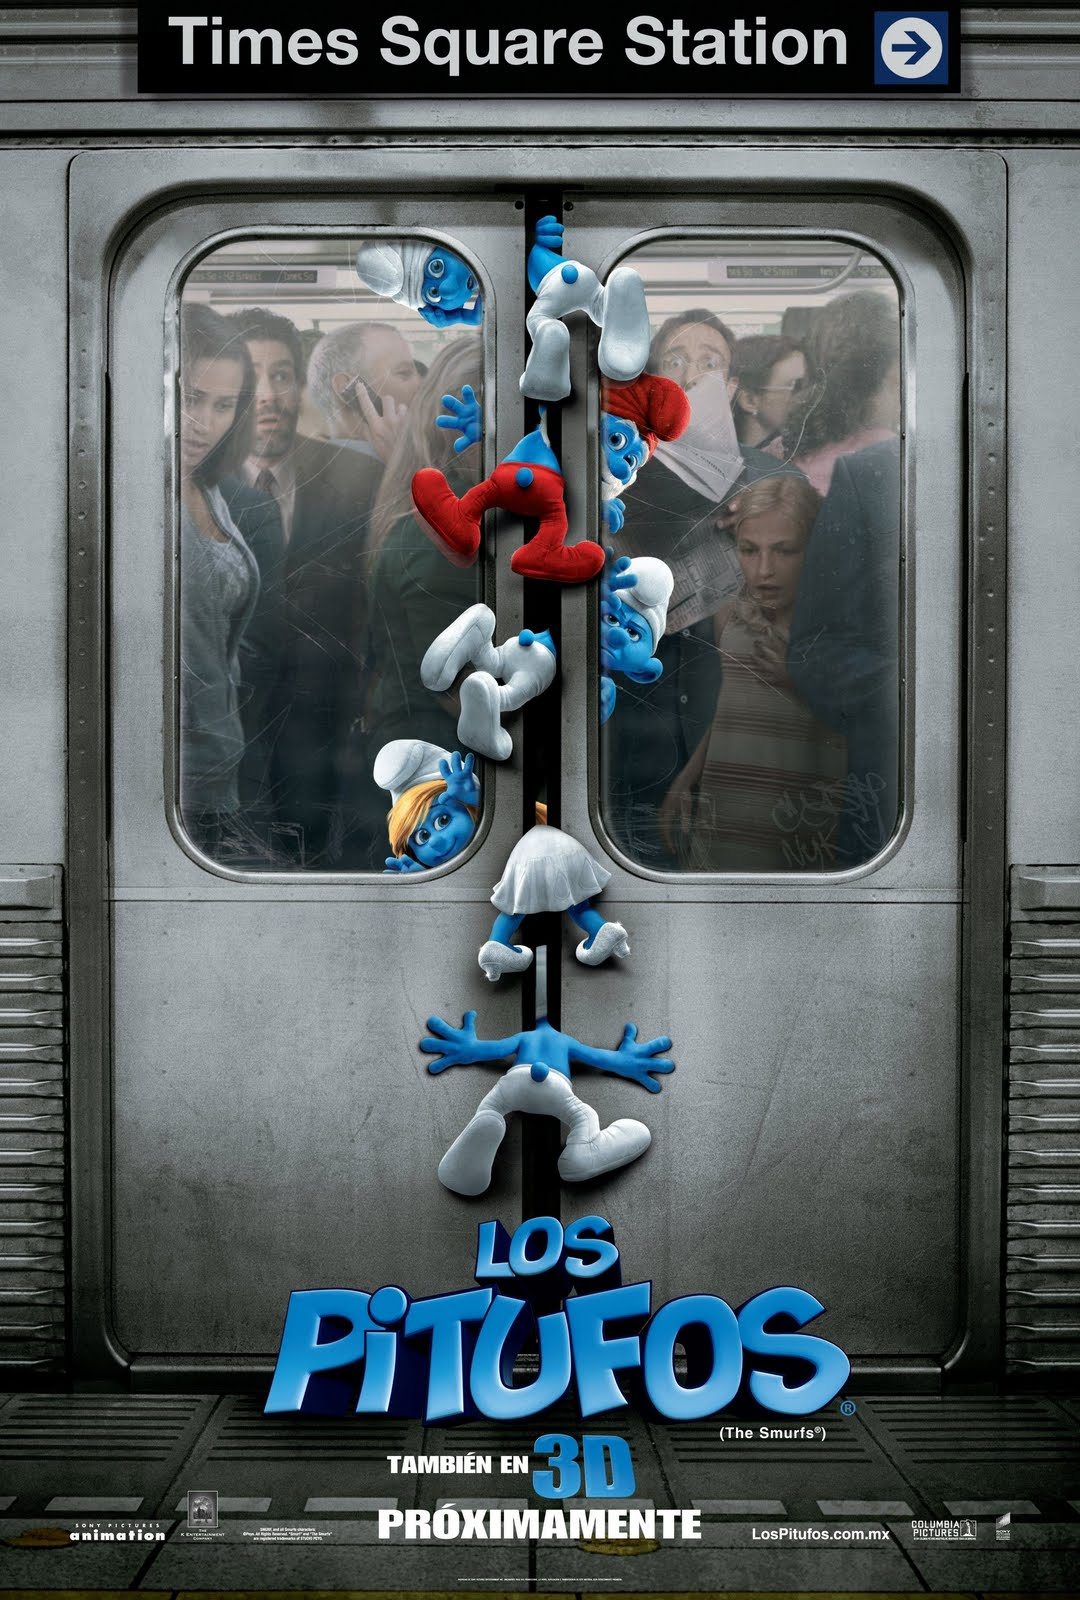 the smurfs 3d movie poster wallpapers